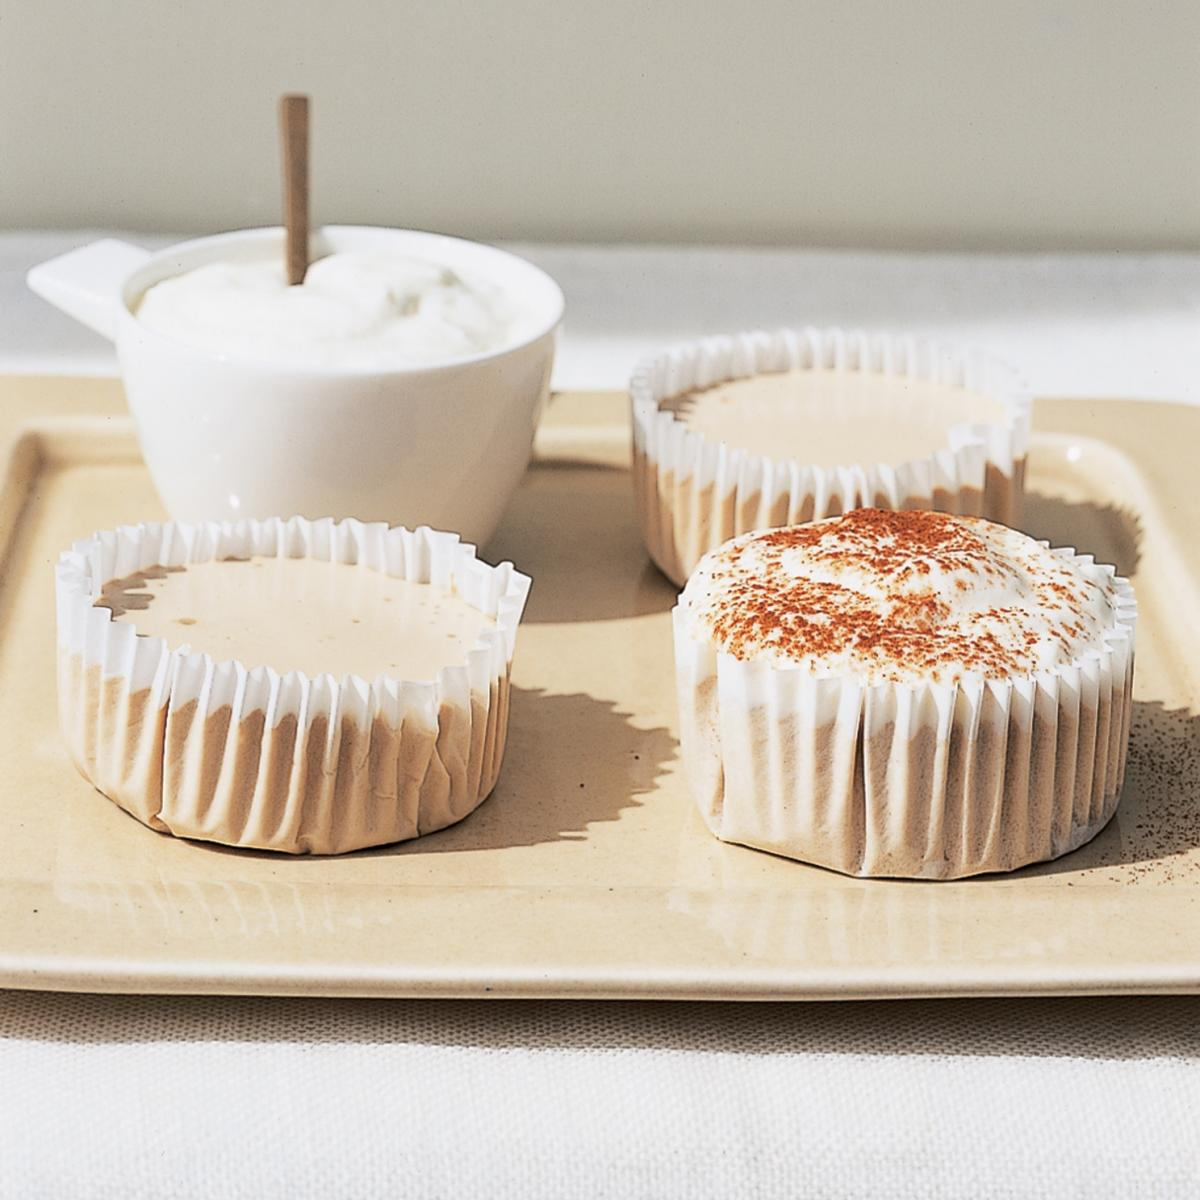 Htc cappuccino cheesecakes